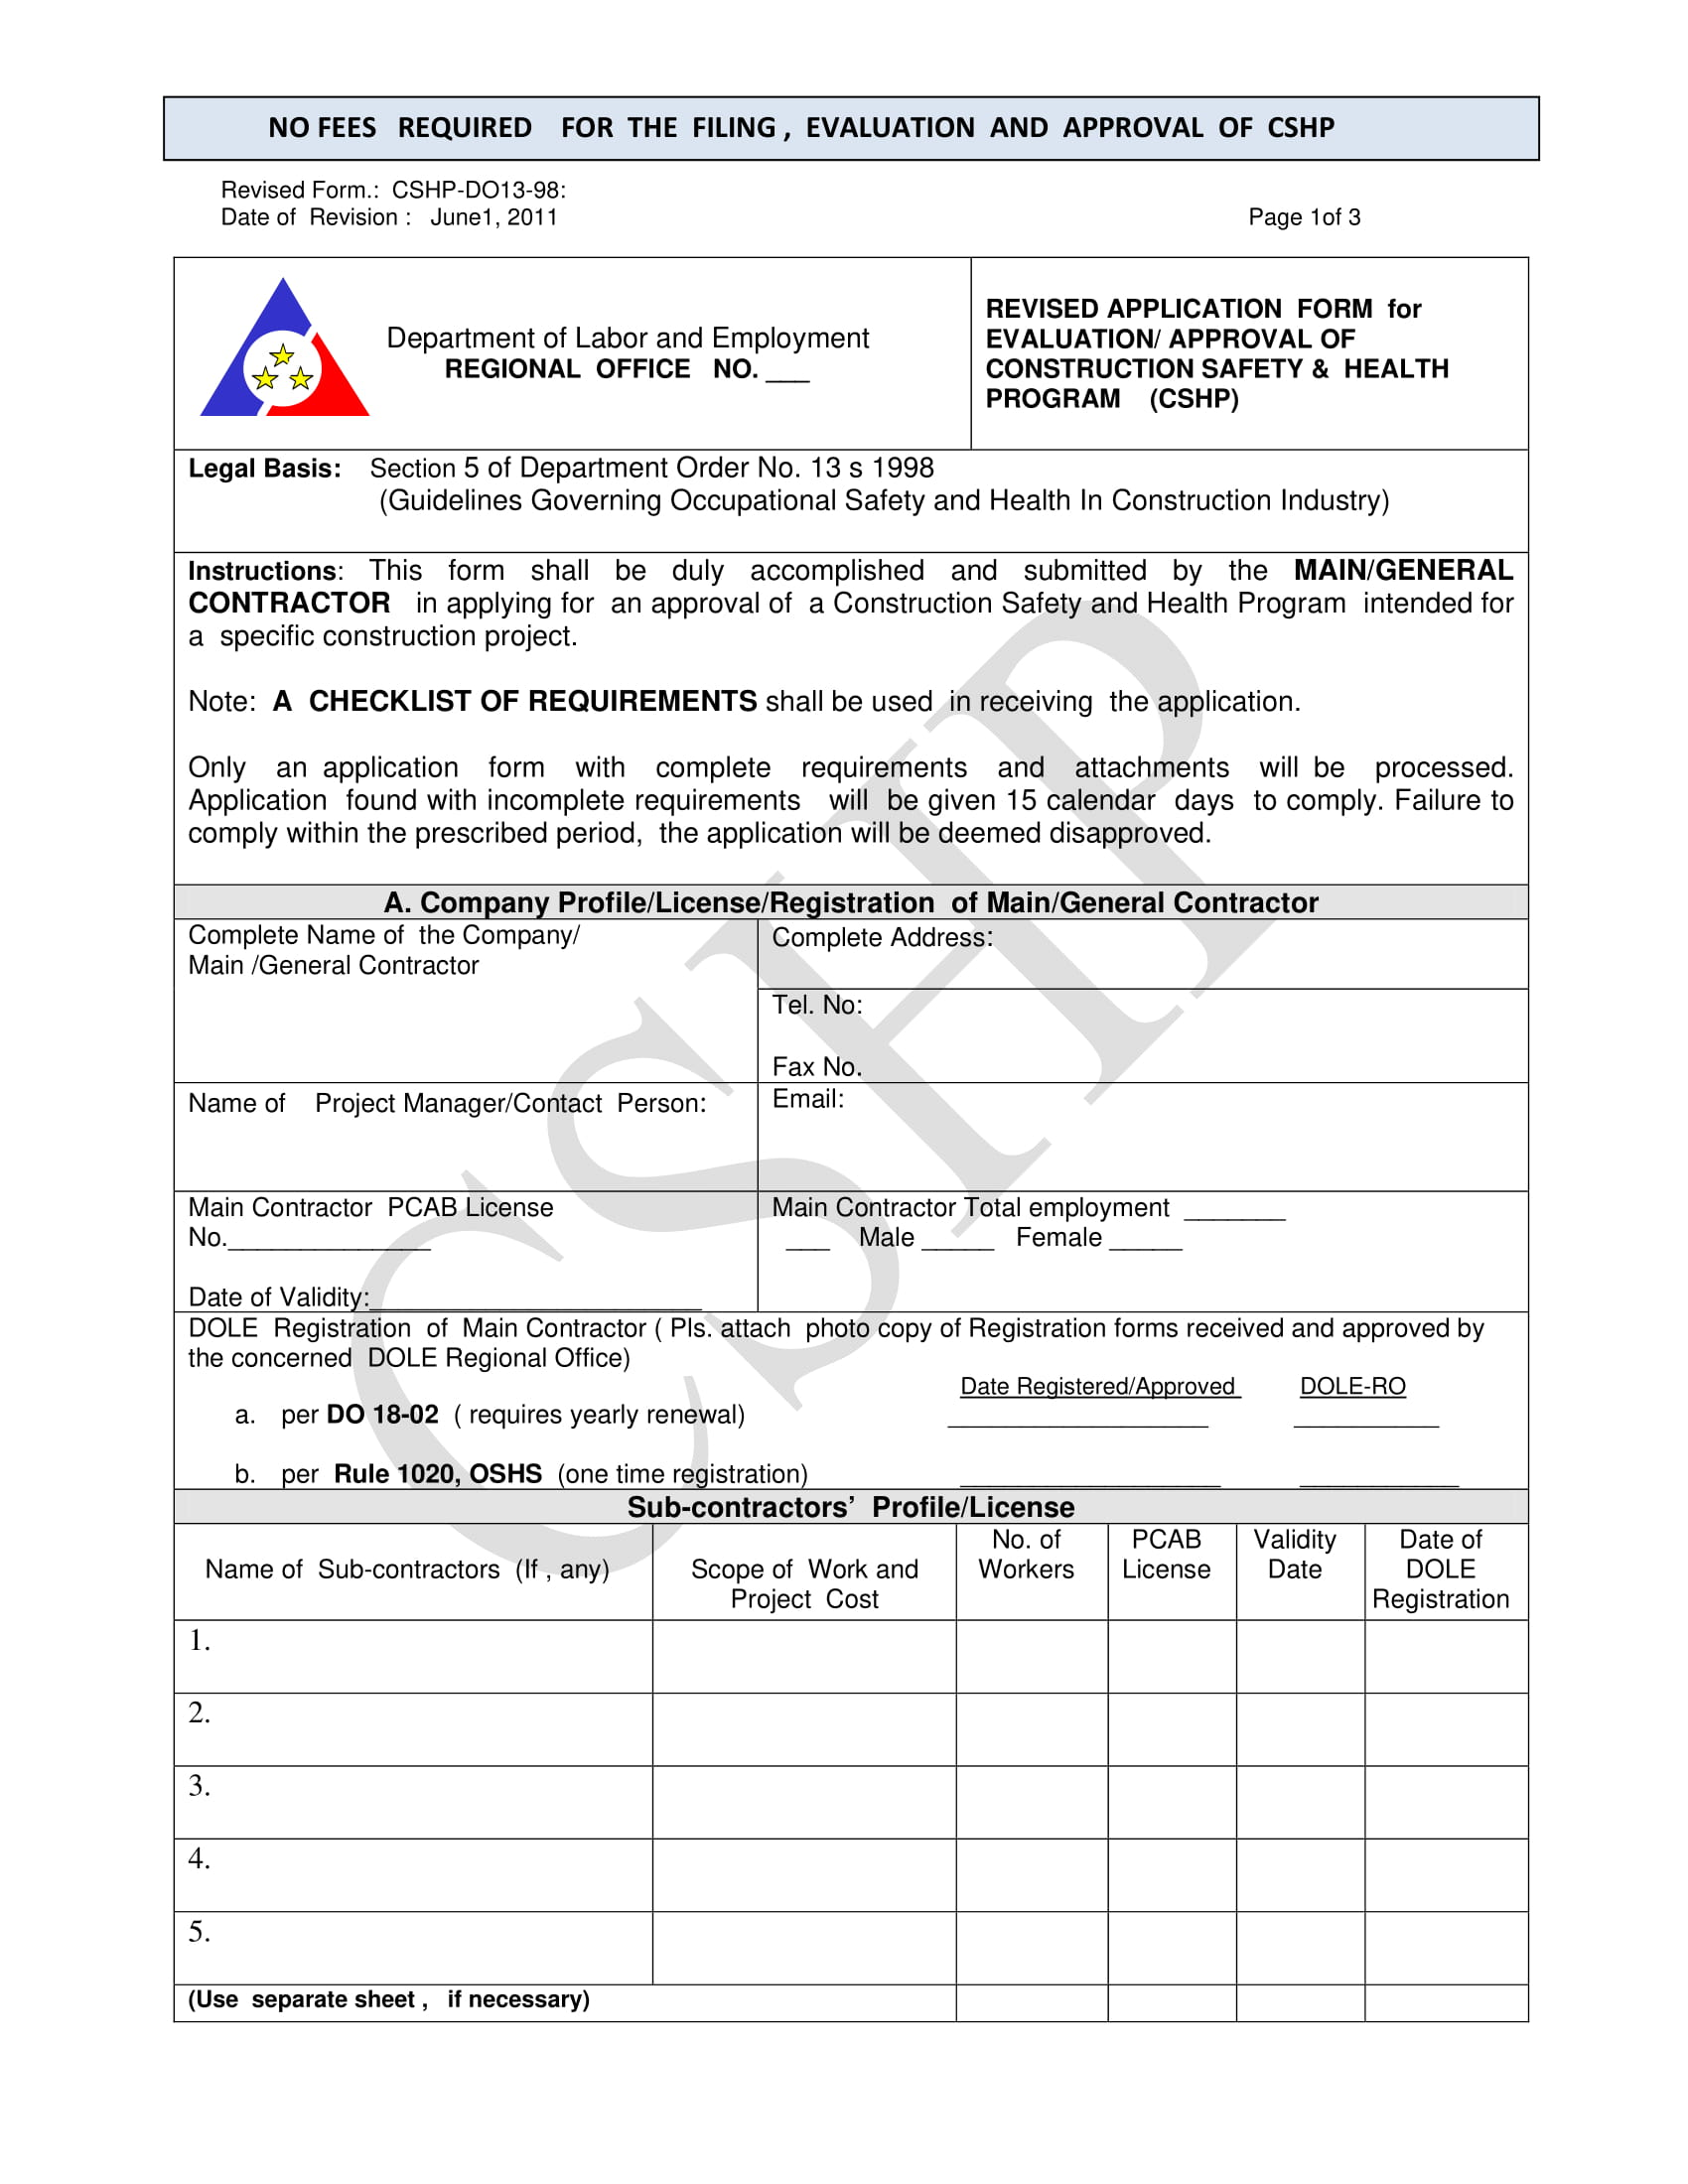 construction safety evaluation approval form 1